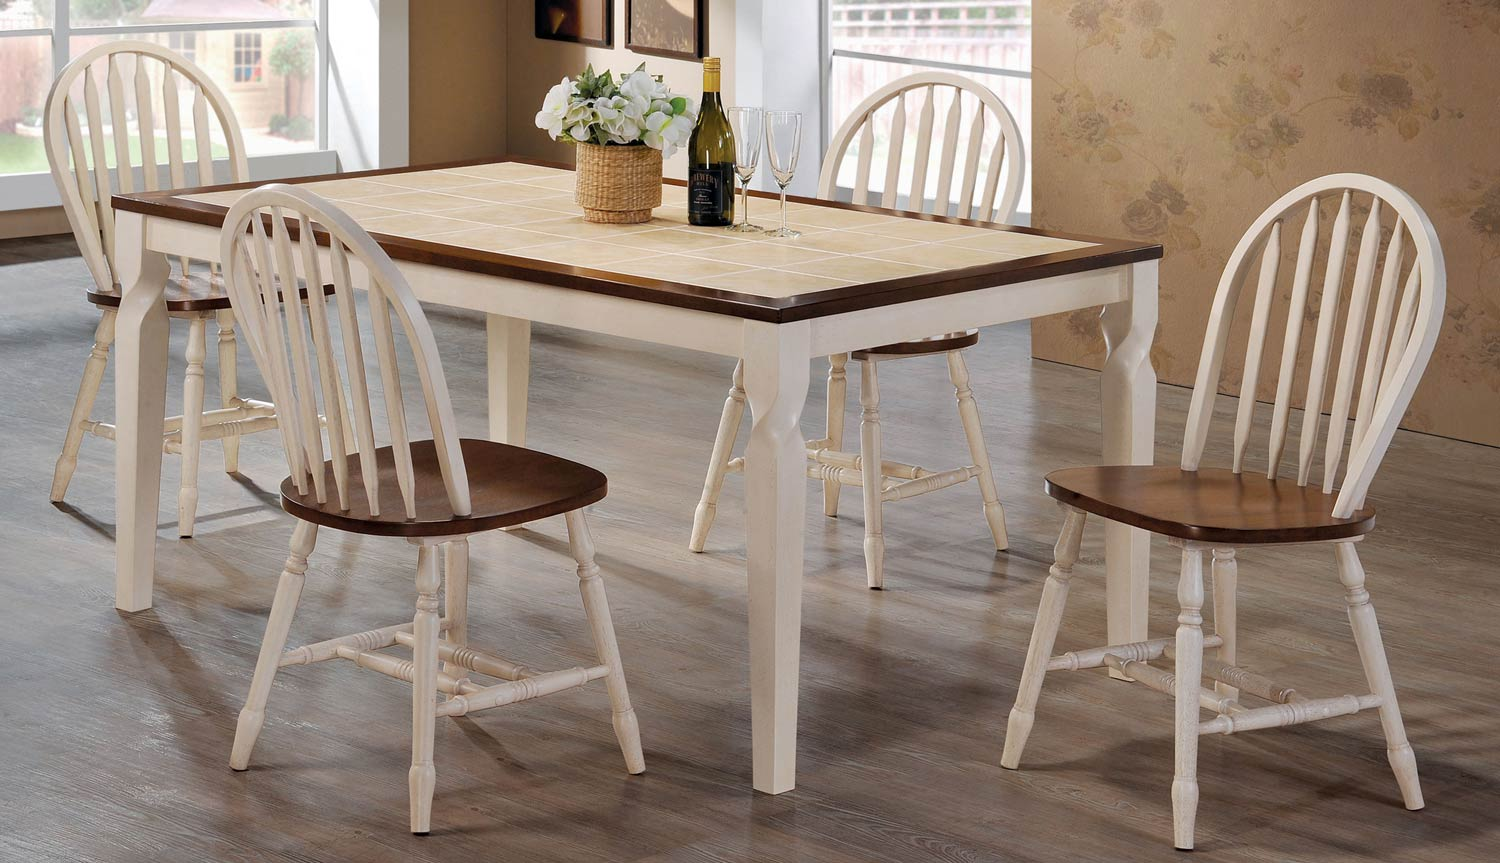 Coaster Bradley Dining Set - Warm Brown/Antique Beige